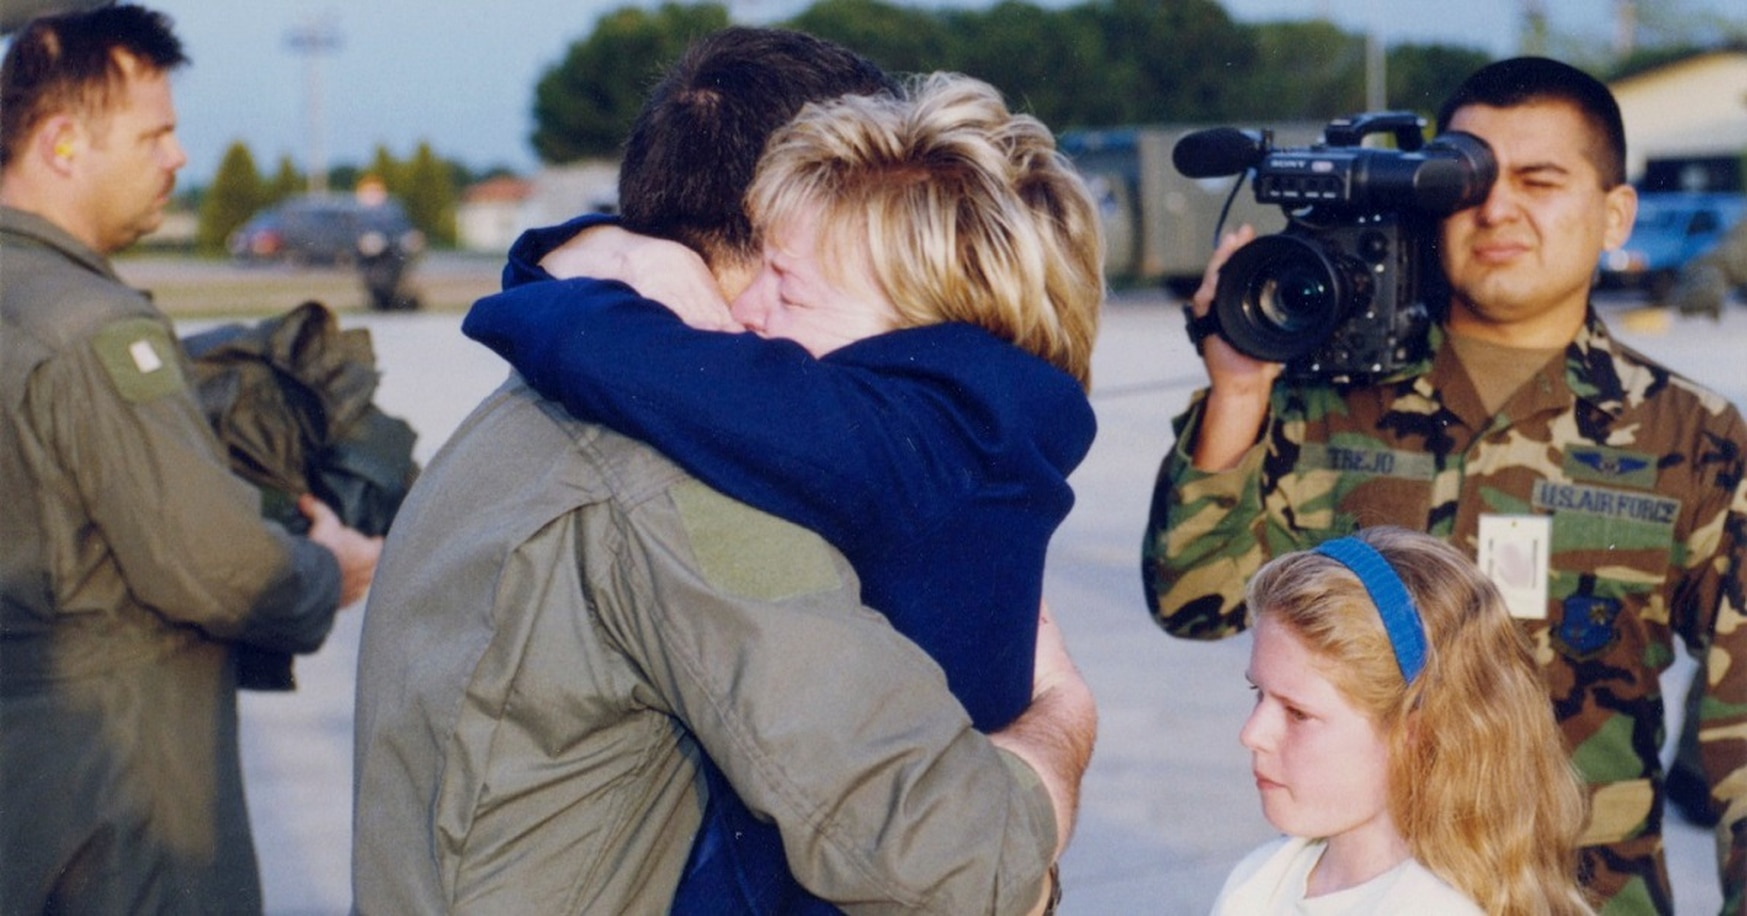 An emotional Dawn Goldfein greets her rescued husband with a bear hug as daughter Danielle looks on. (Air Force)